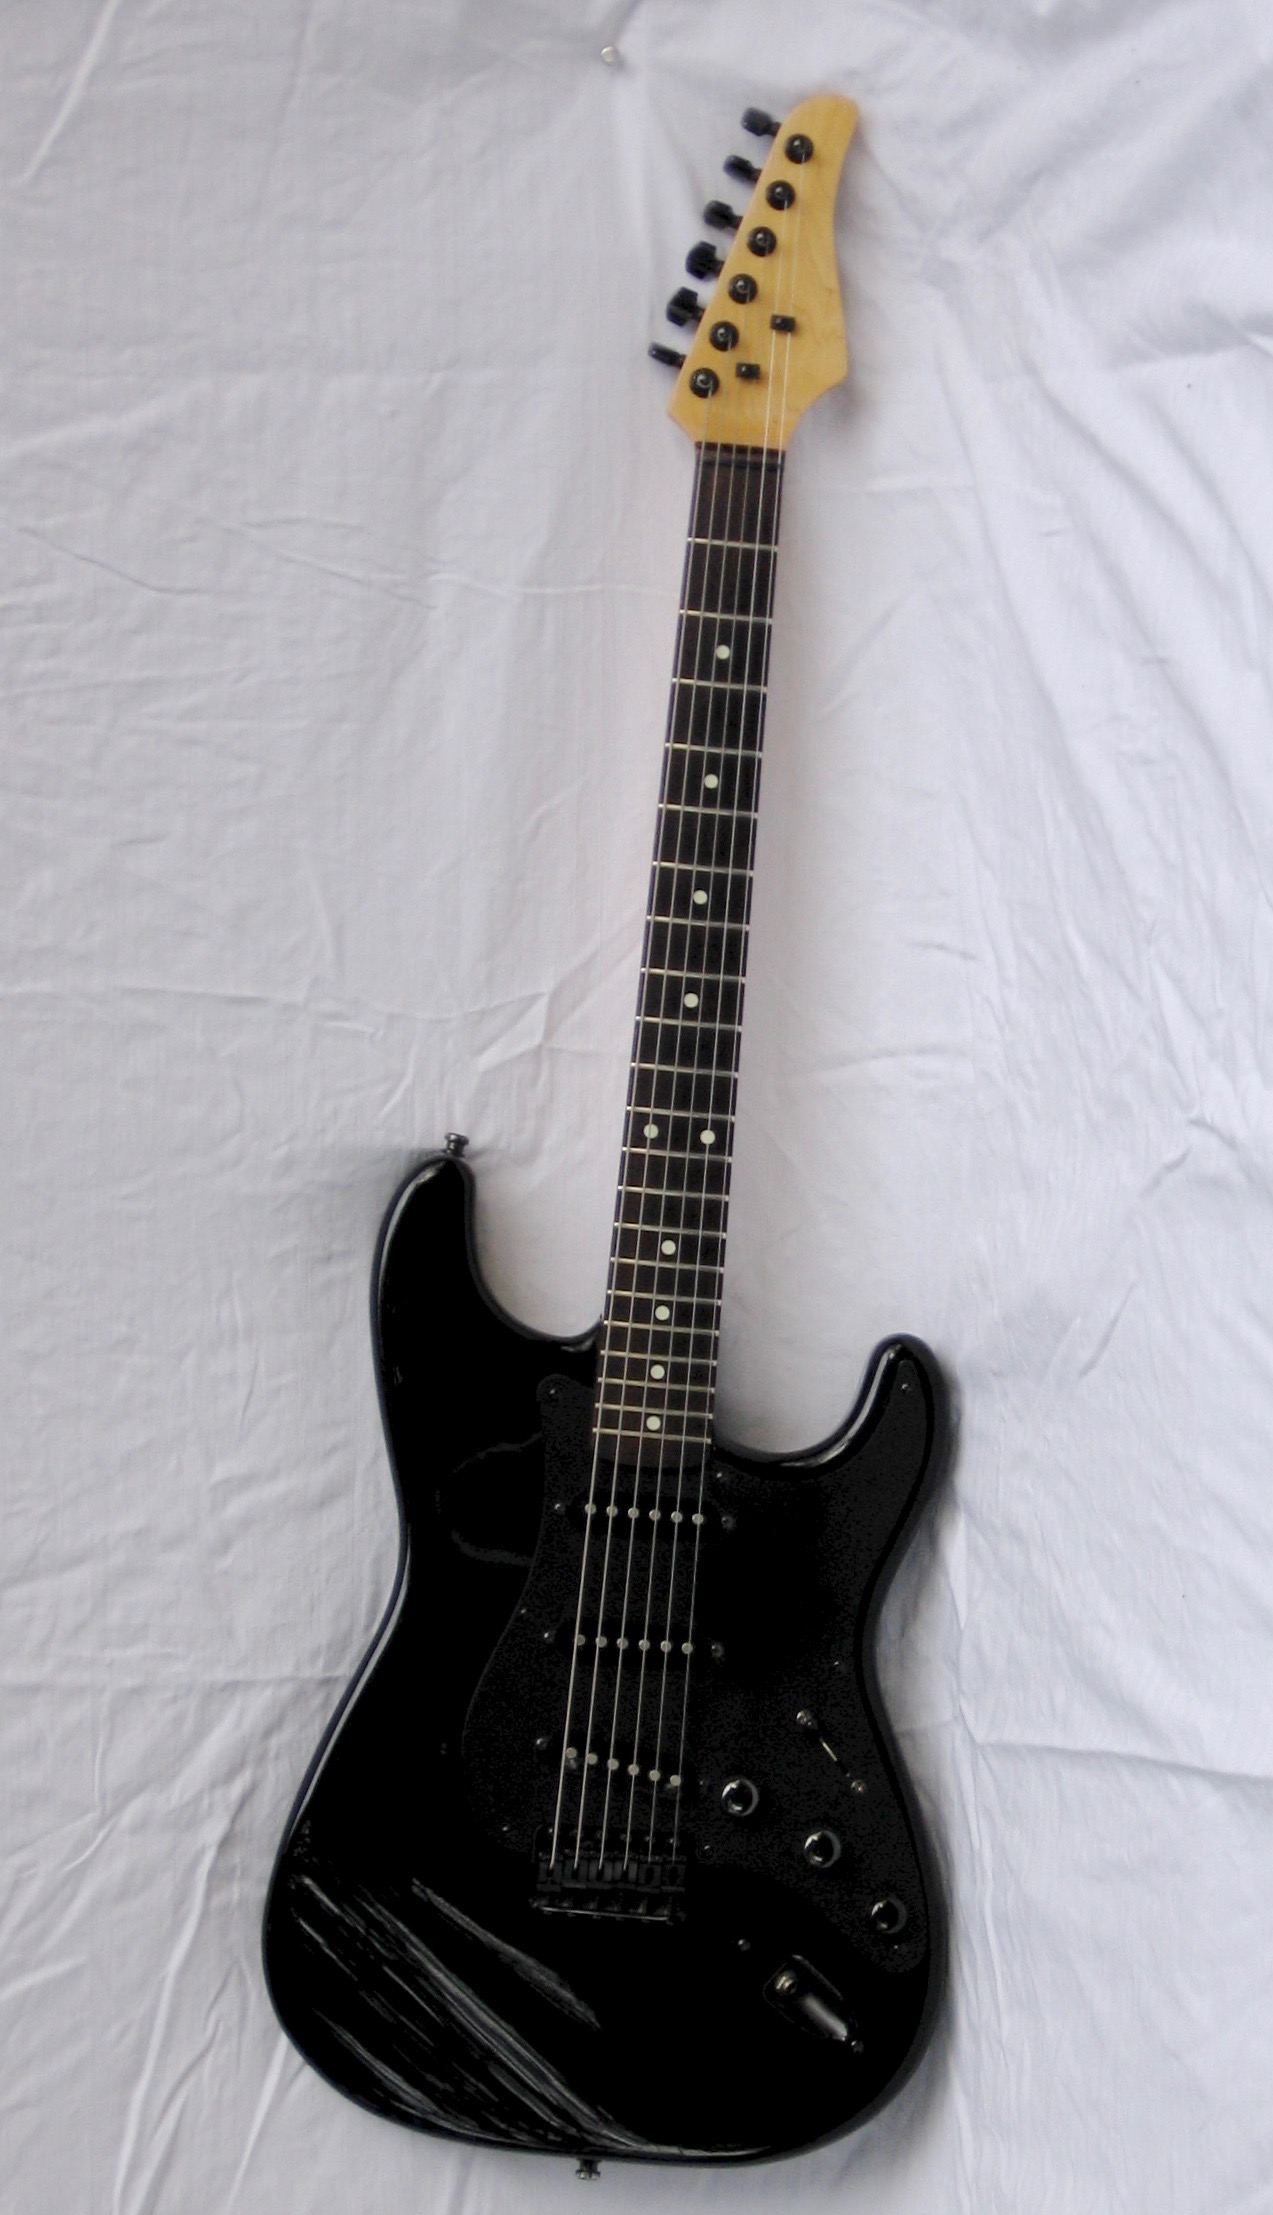 Revisiting My Old Black Stratocaster